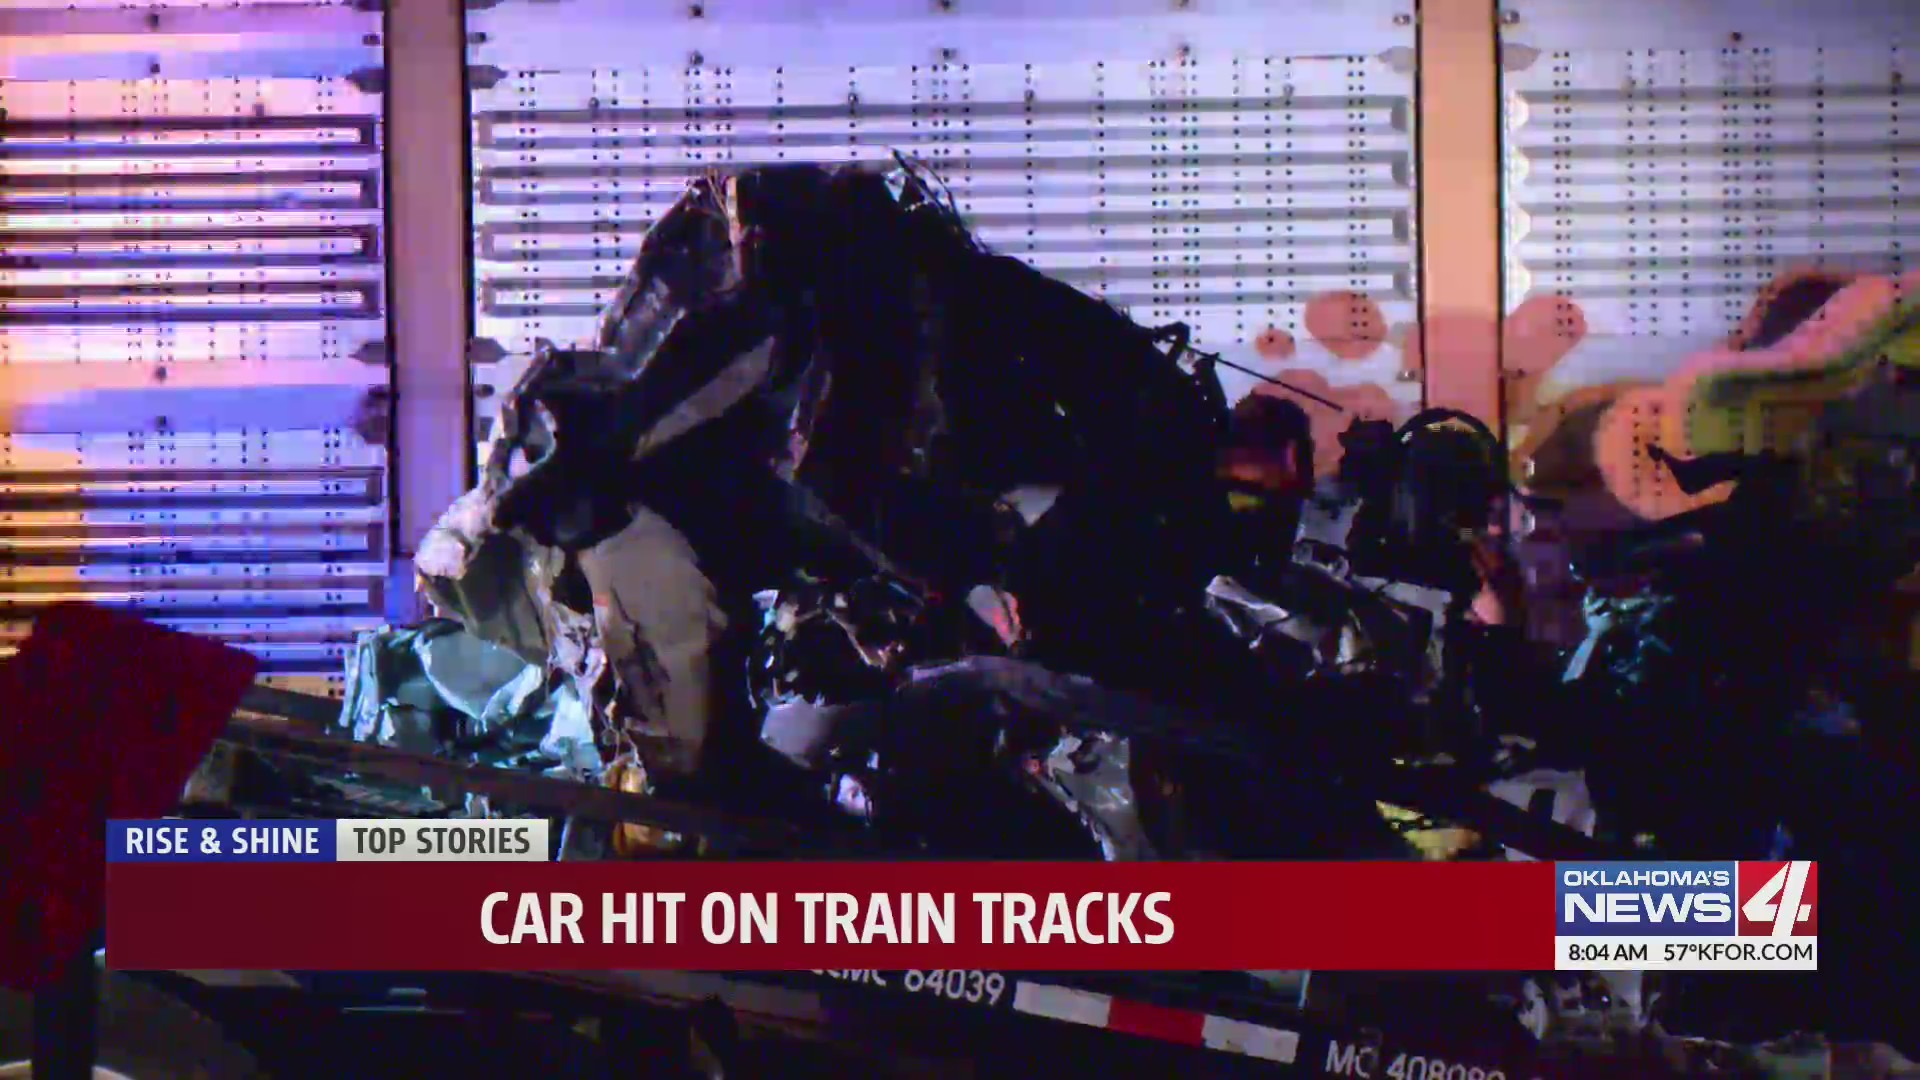 car sandwiched between trains